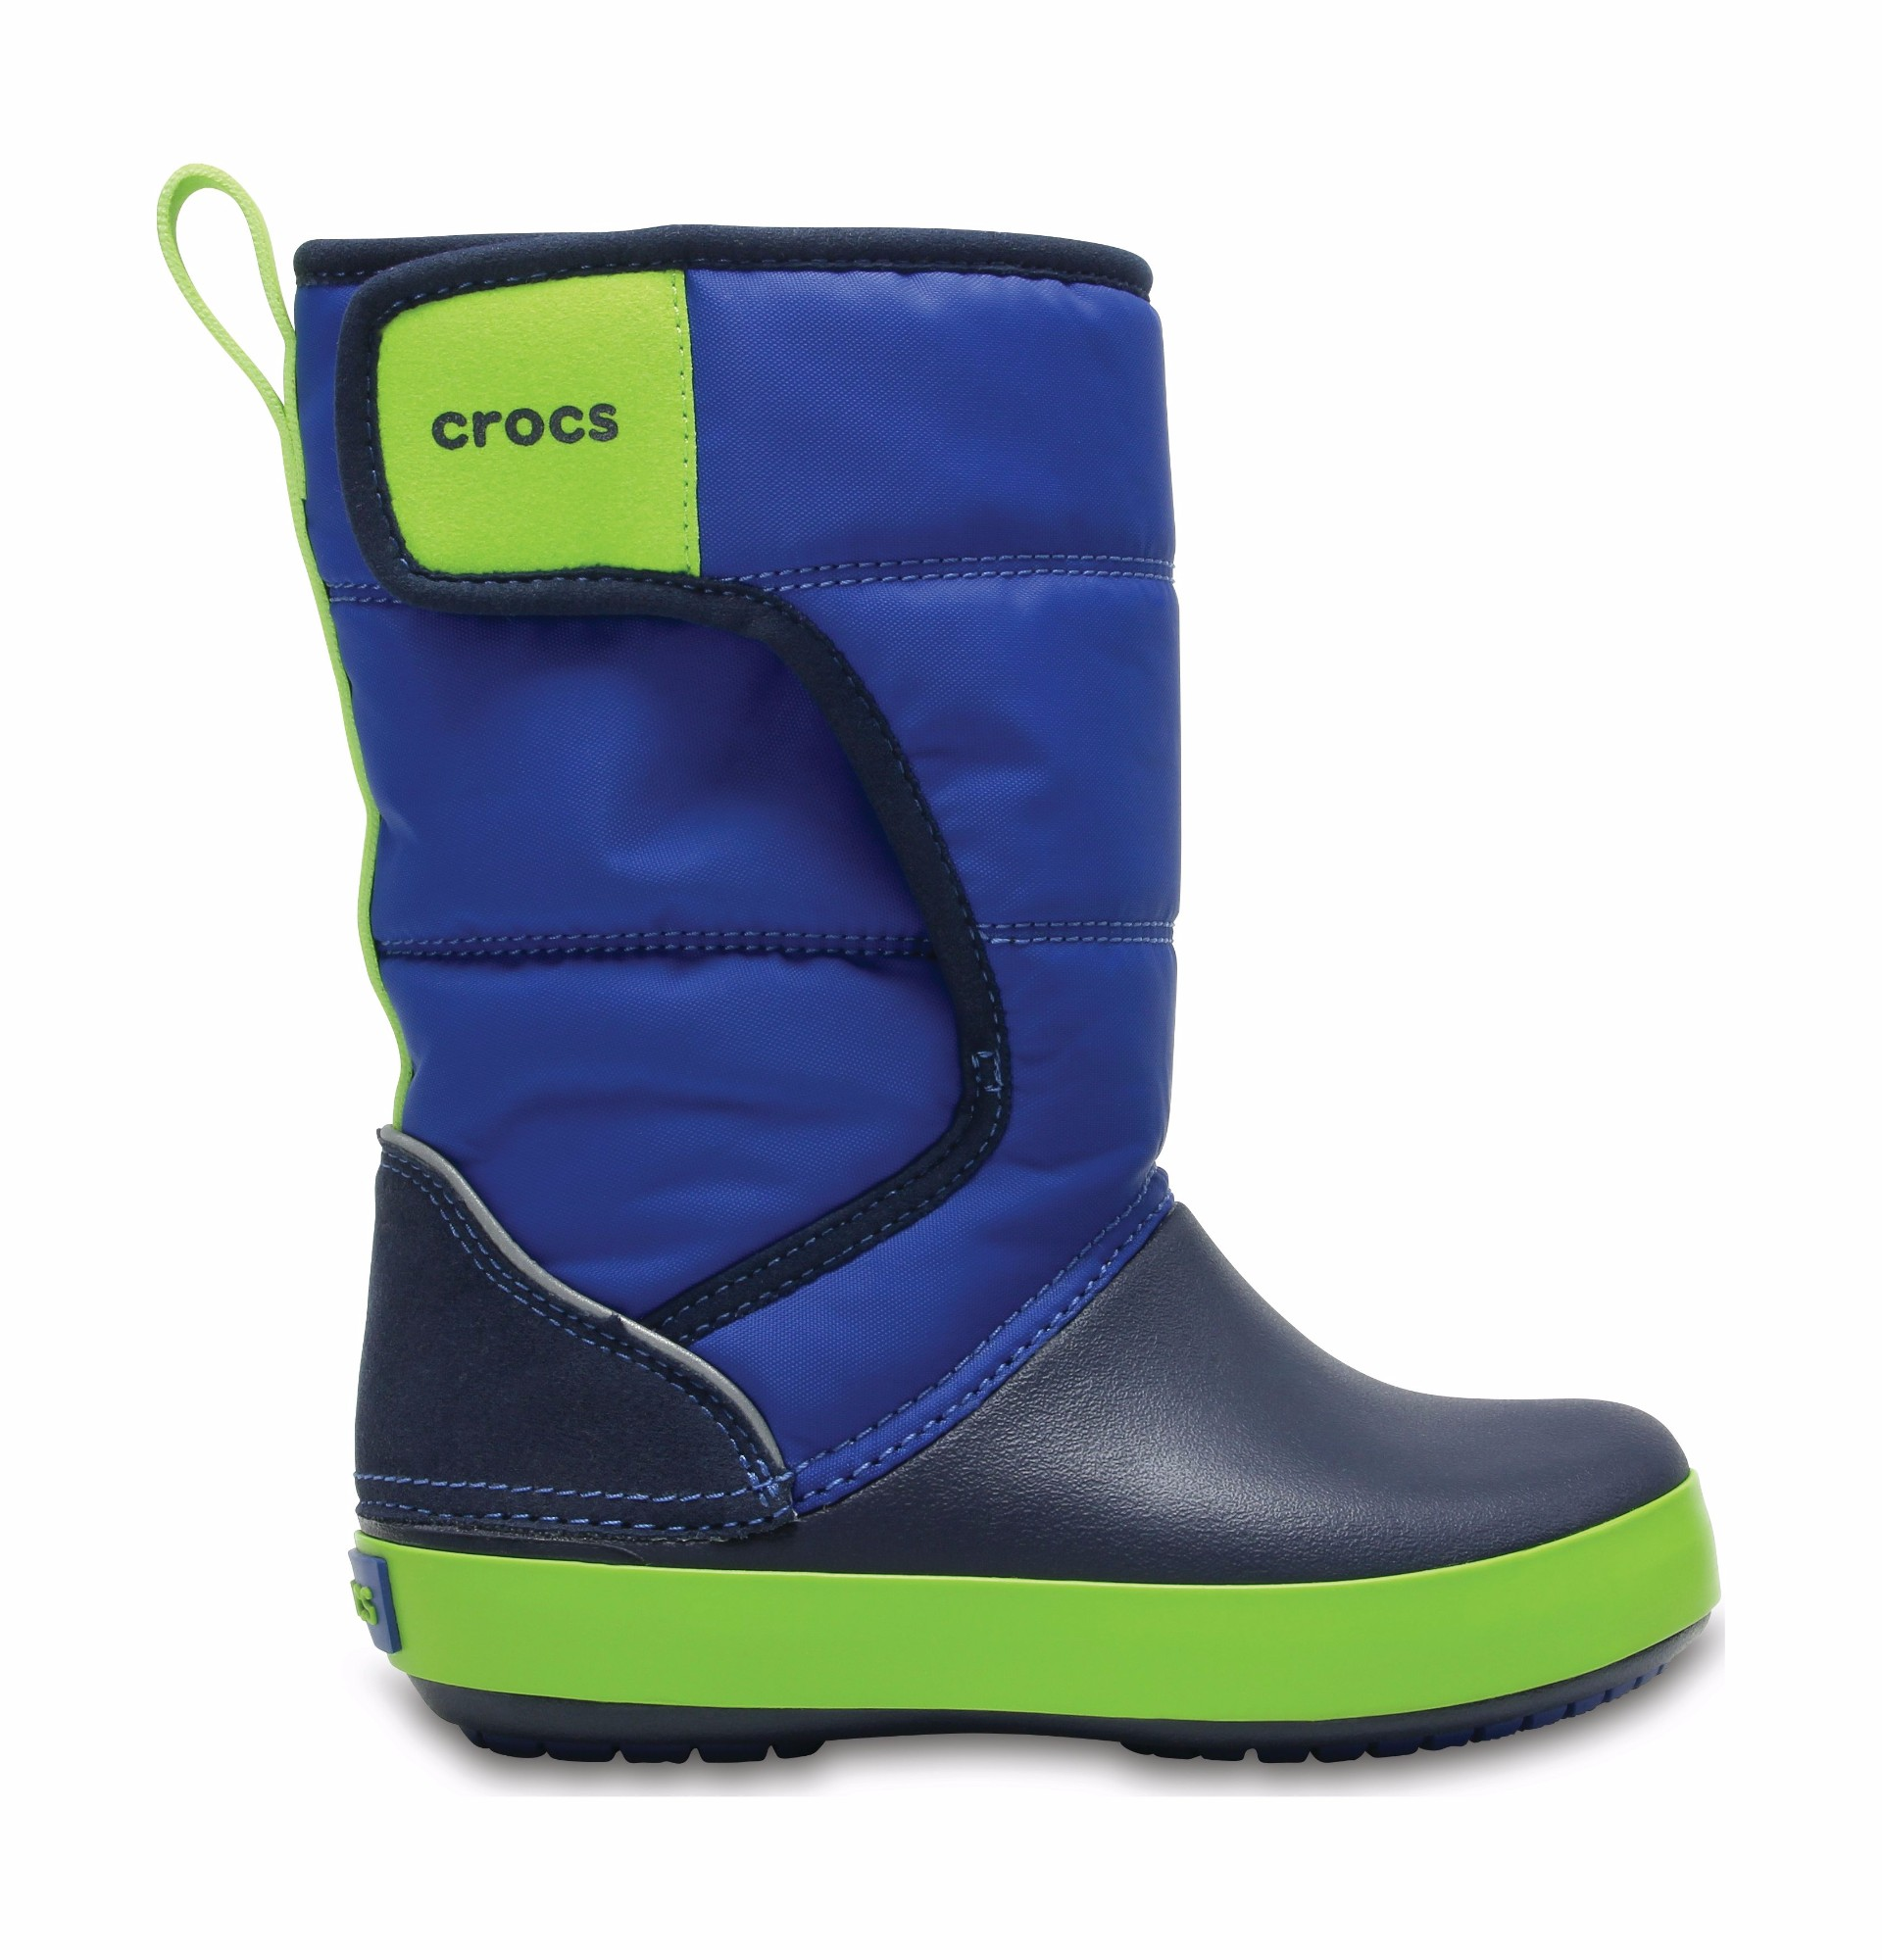 Crocs™ Lodgepoint Snow Boot Kid's Blue Jean/Navy 37,5